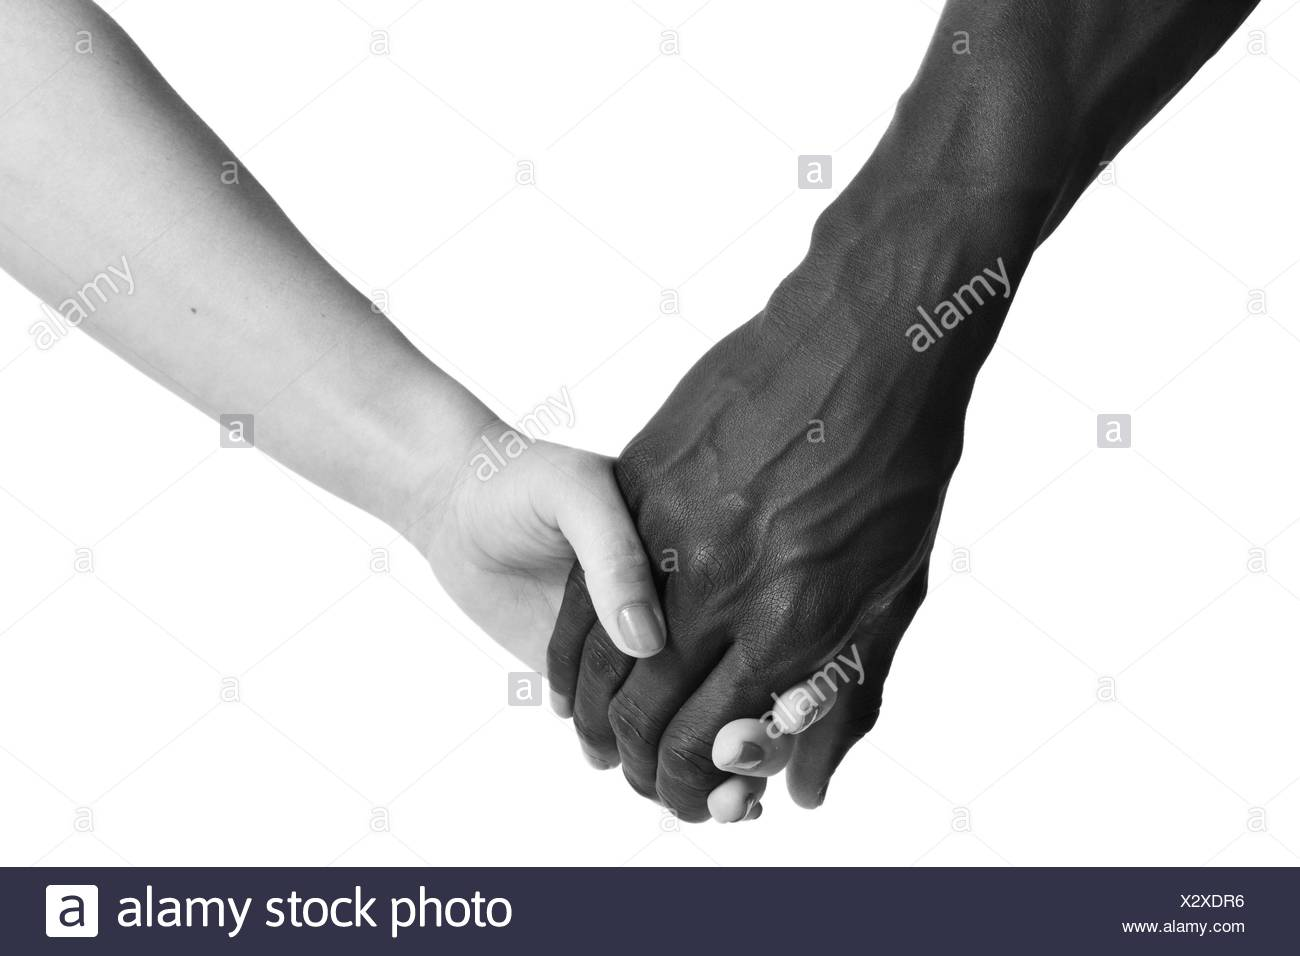 One caucasian and one african hand on white background. - Stock Image